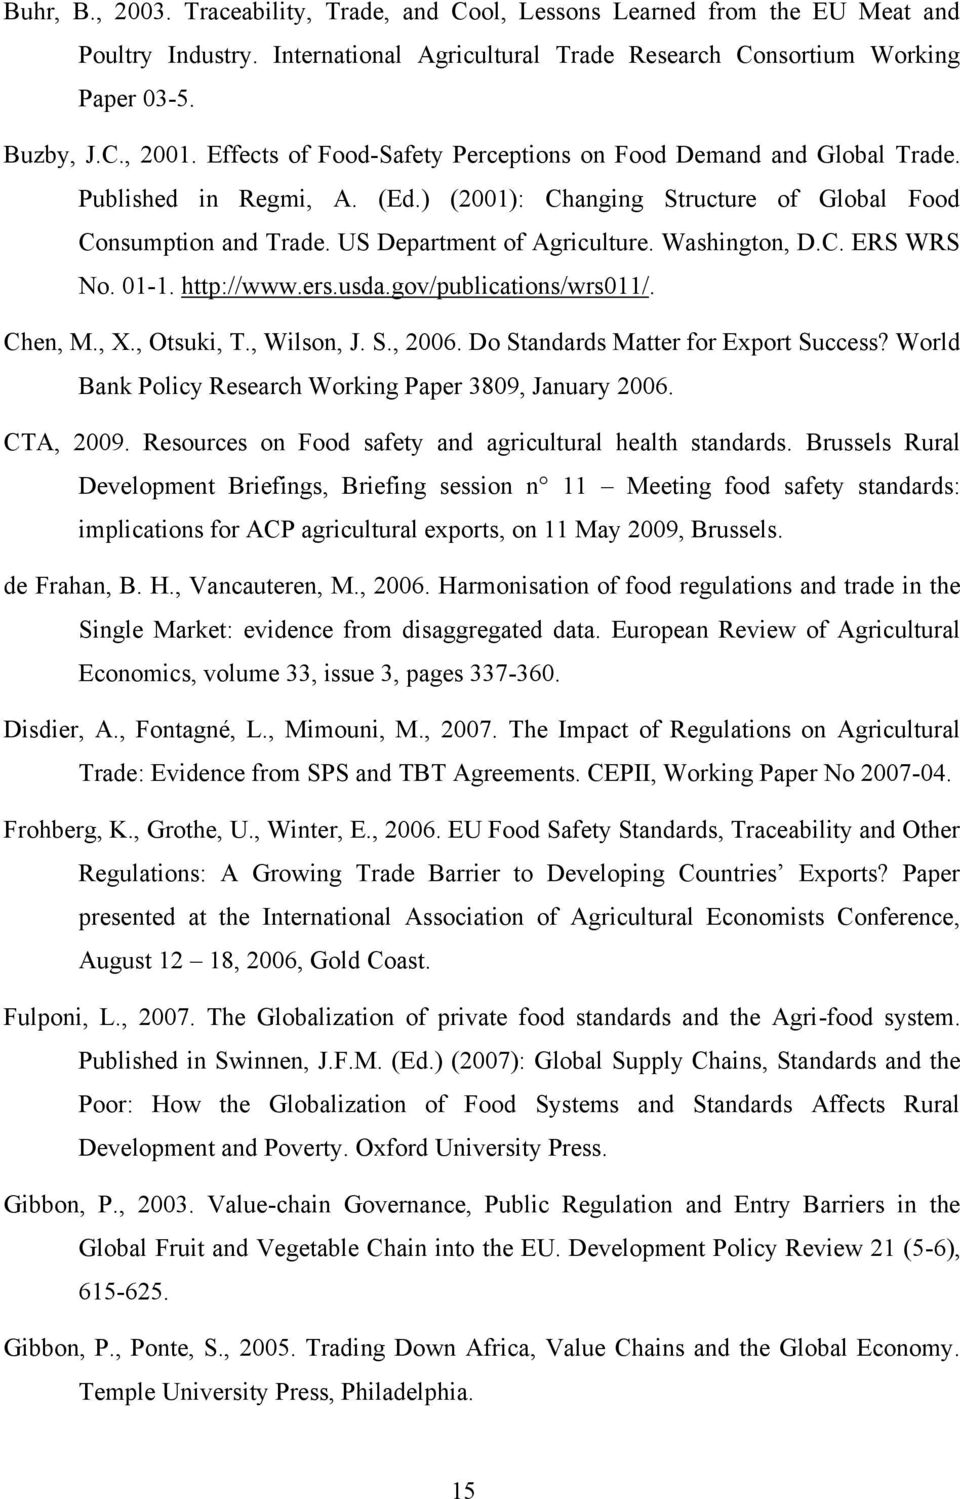 Washington, D.C. ERS WRS No. 01-1. http://www.ers.usda.gov/publications/wrs011/. Chen, M., X., Otsuki, T., Wilson, J. S., 2006. Do Standards Matter for Export Success?